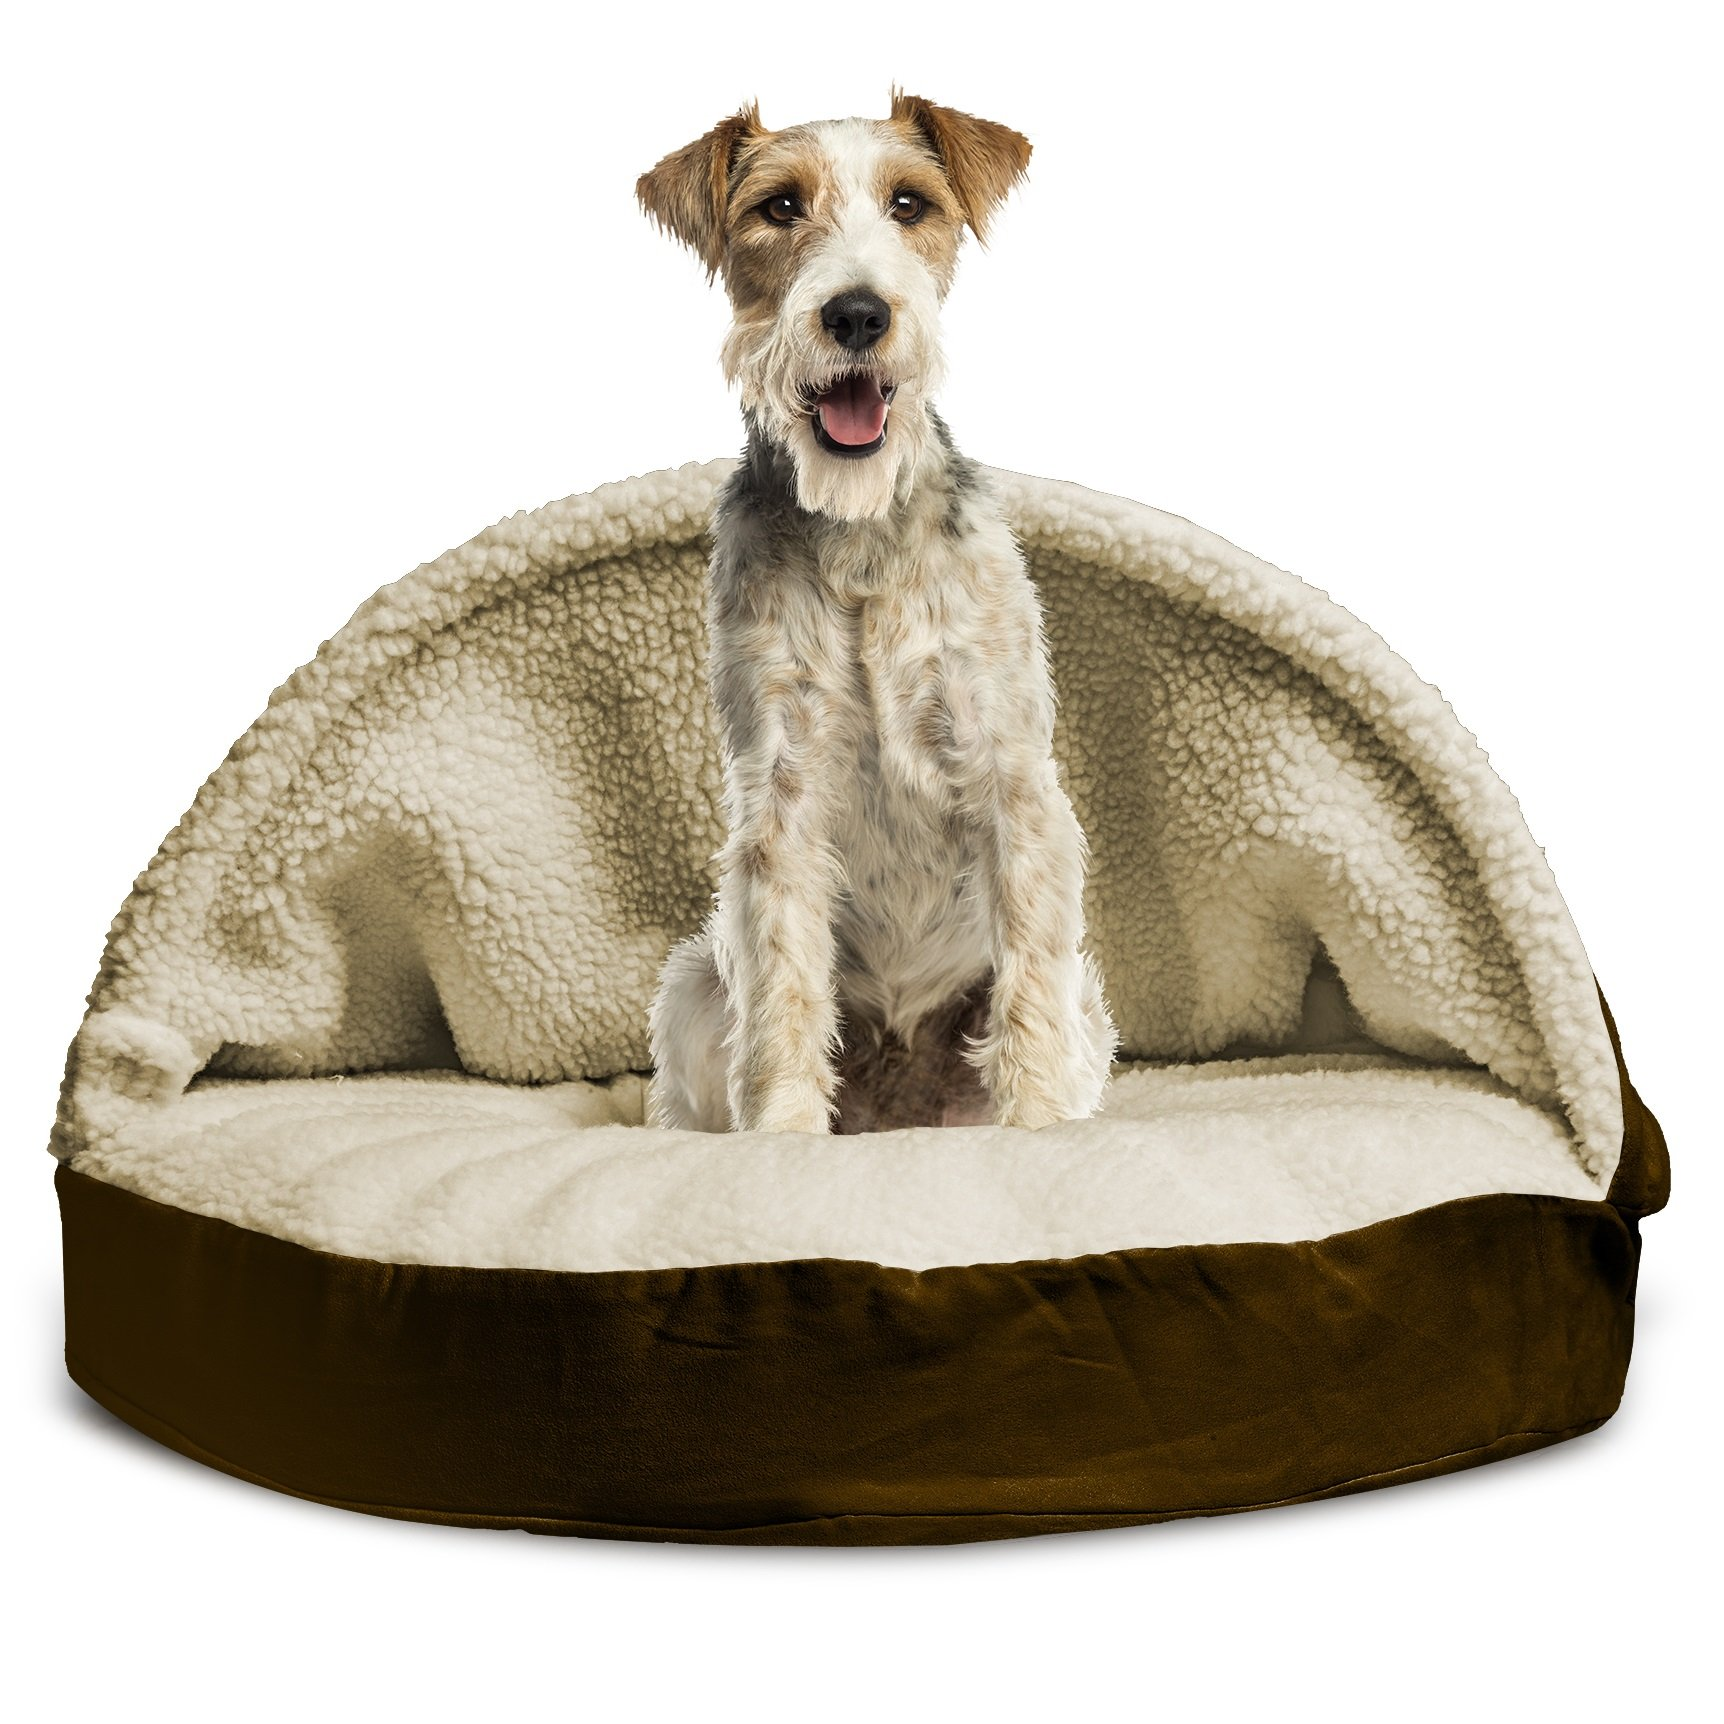 Furhaven Pet Dog Bed | Memory Foam Round Faux Sheepskin Snuggery Burrow Pet Bed for Dogs & Cats, Espresso, 35-Inch